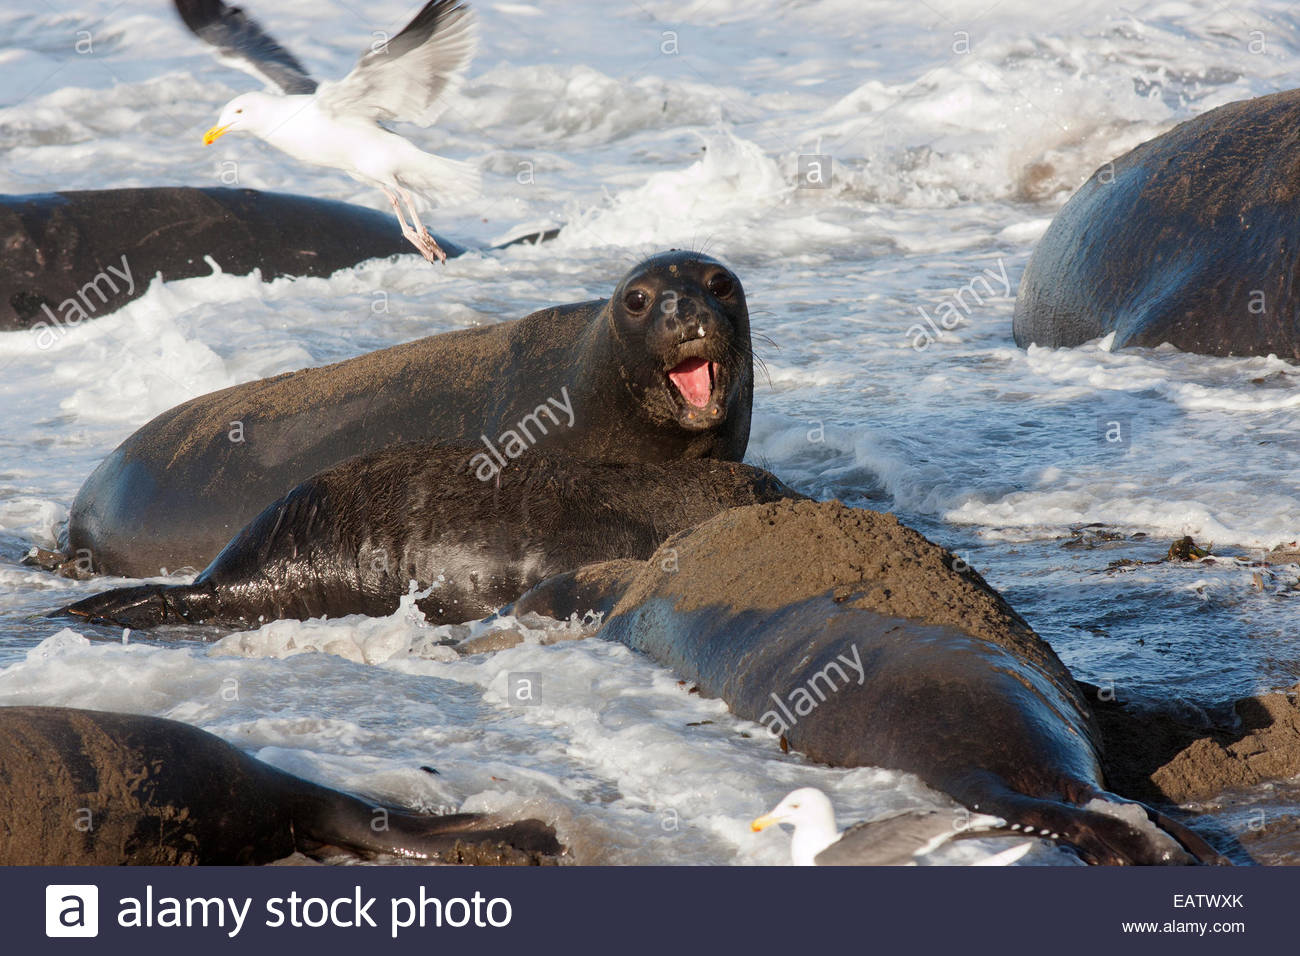 A northern elephant seal pup gets hit by a wave. - Stock Image